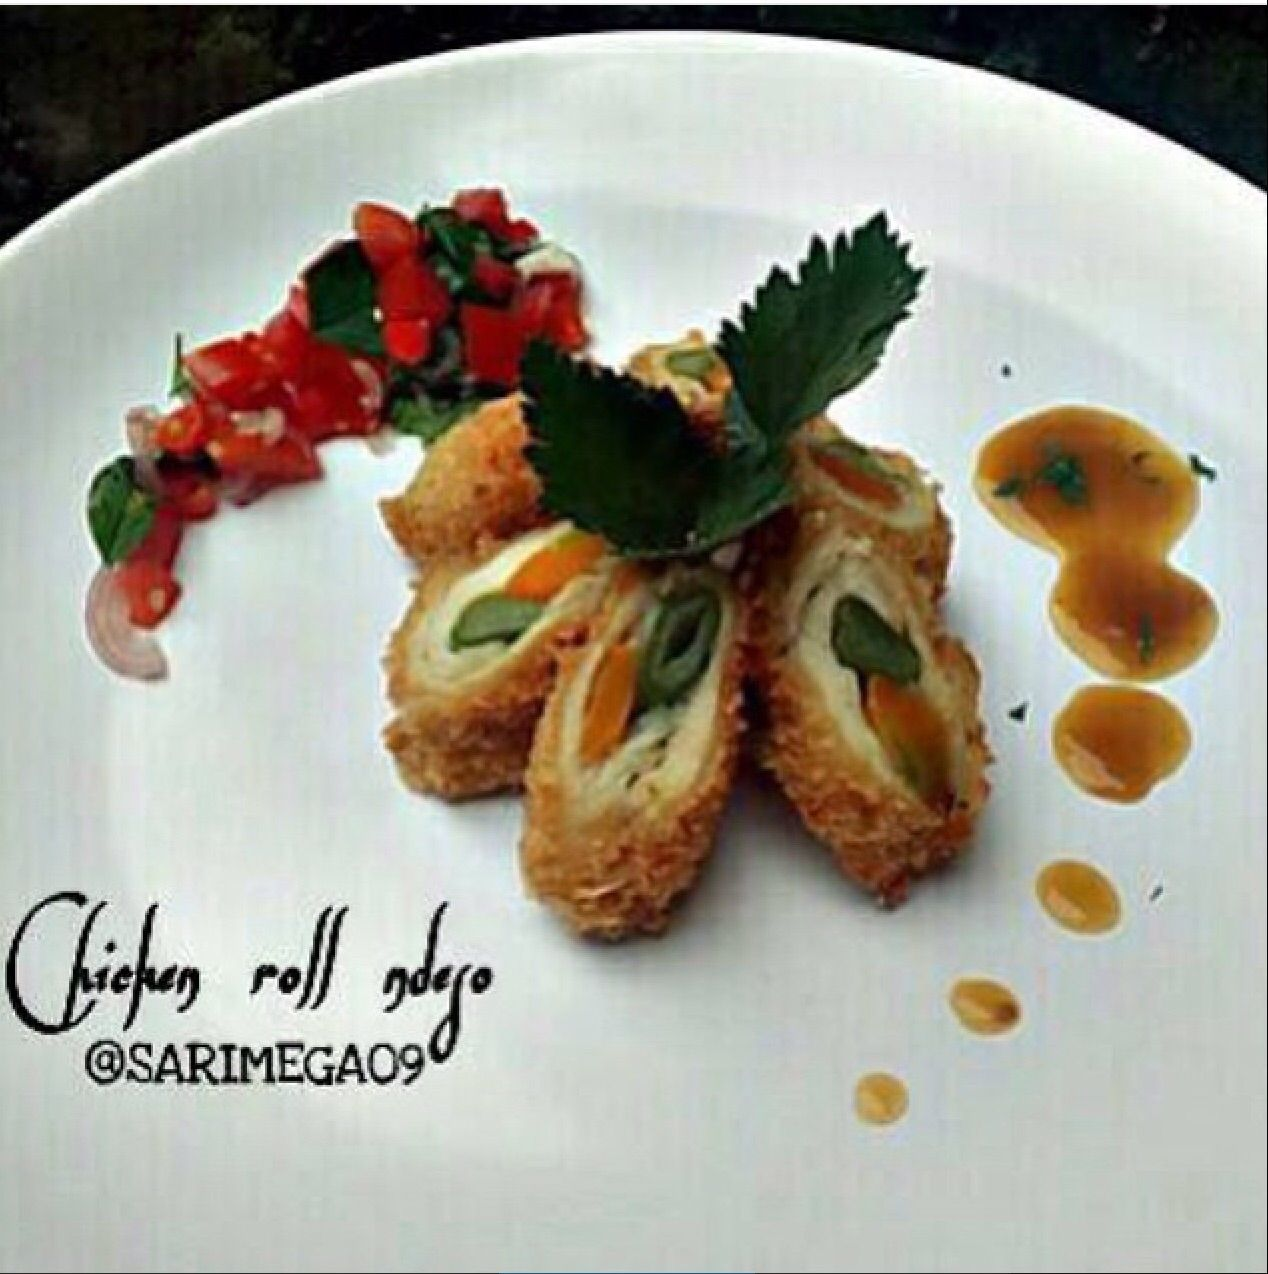 Chicken Roll Ndeso By @Sarimega09